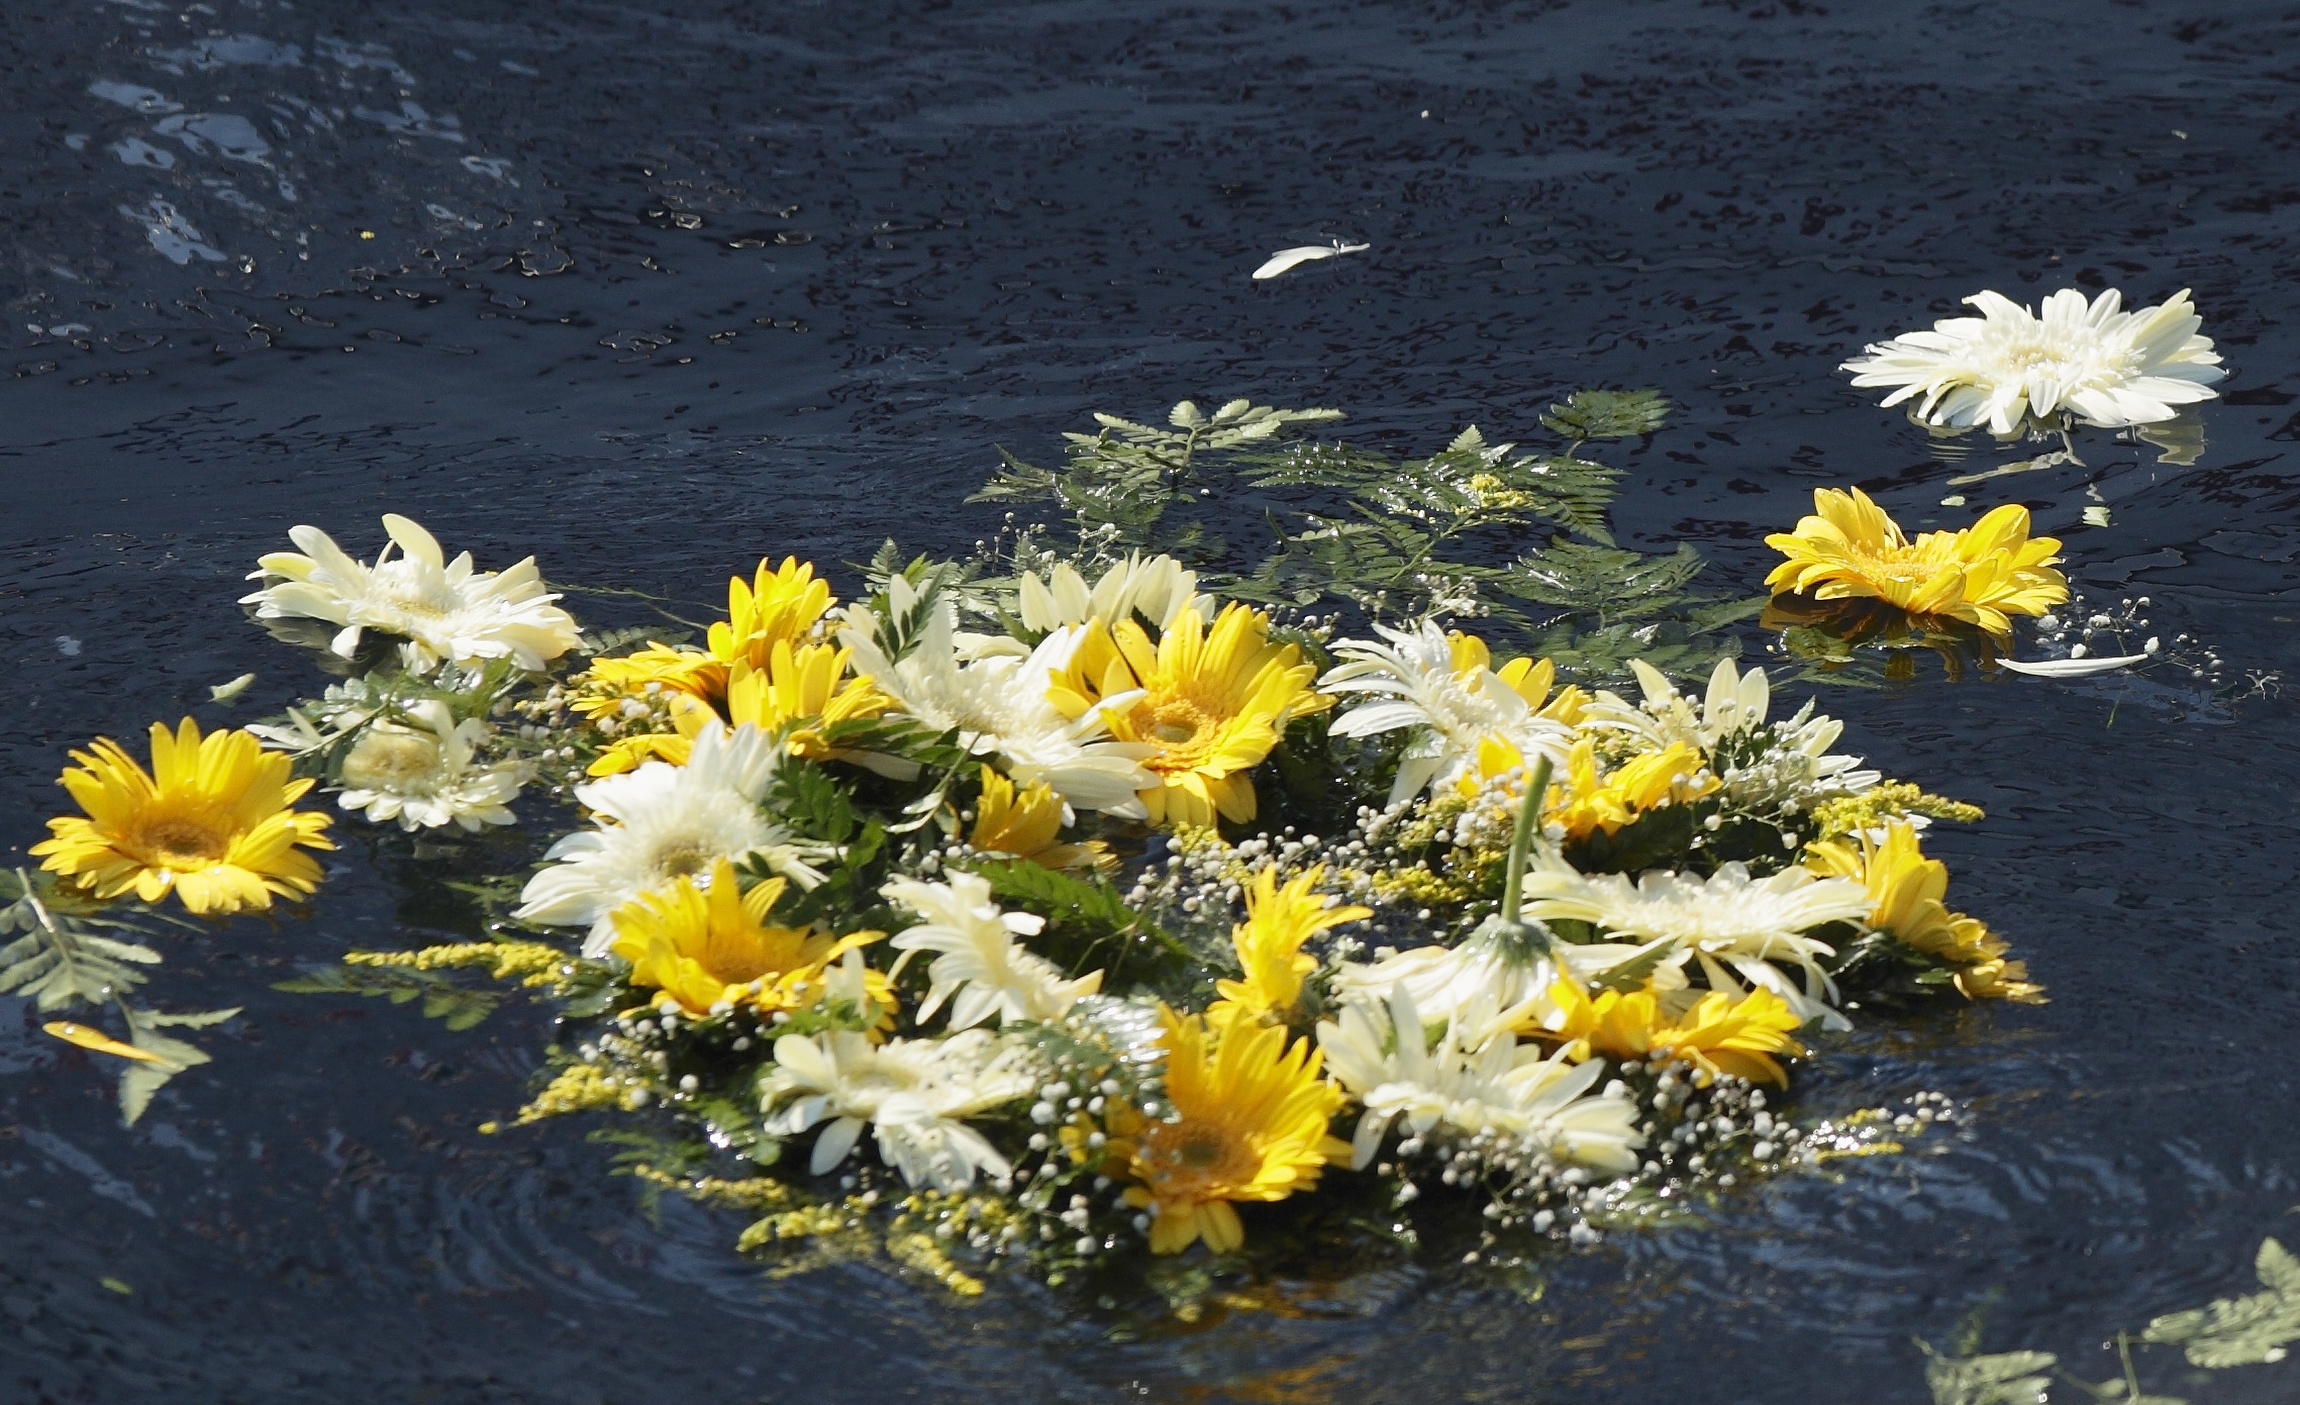 Image: A wreath of flowers thrown by Pope Francis floats in the Mediterranean Sea in the waters off the Italian island of Lampedusa in this July 8, 2013, file photo.